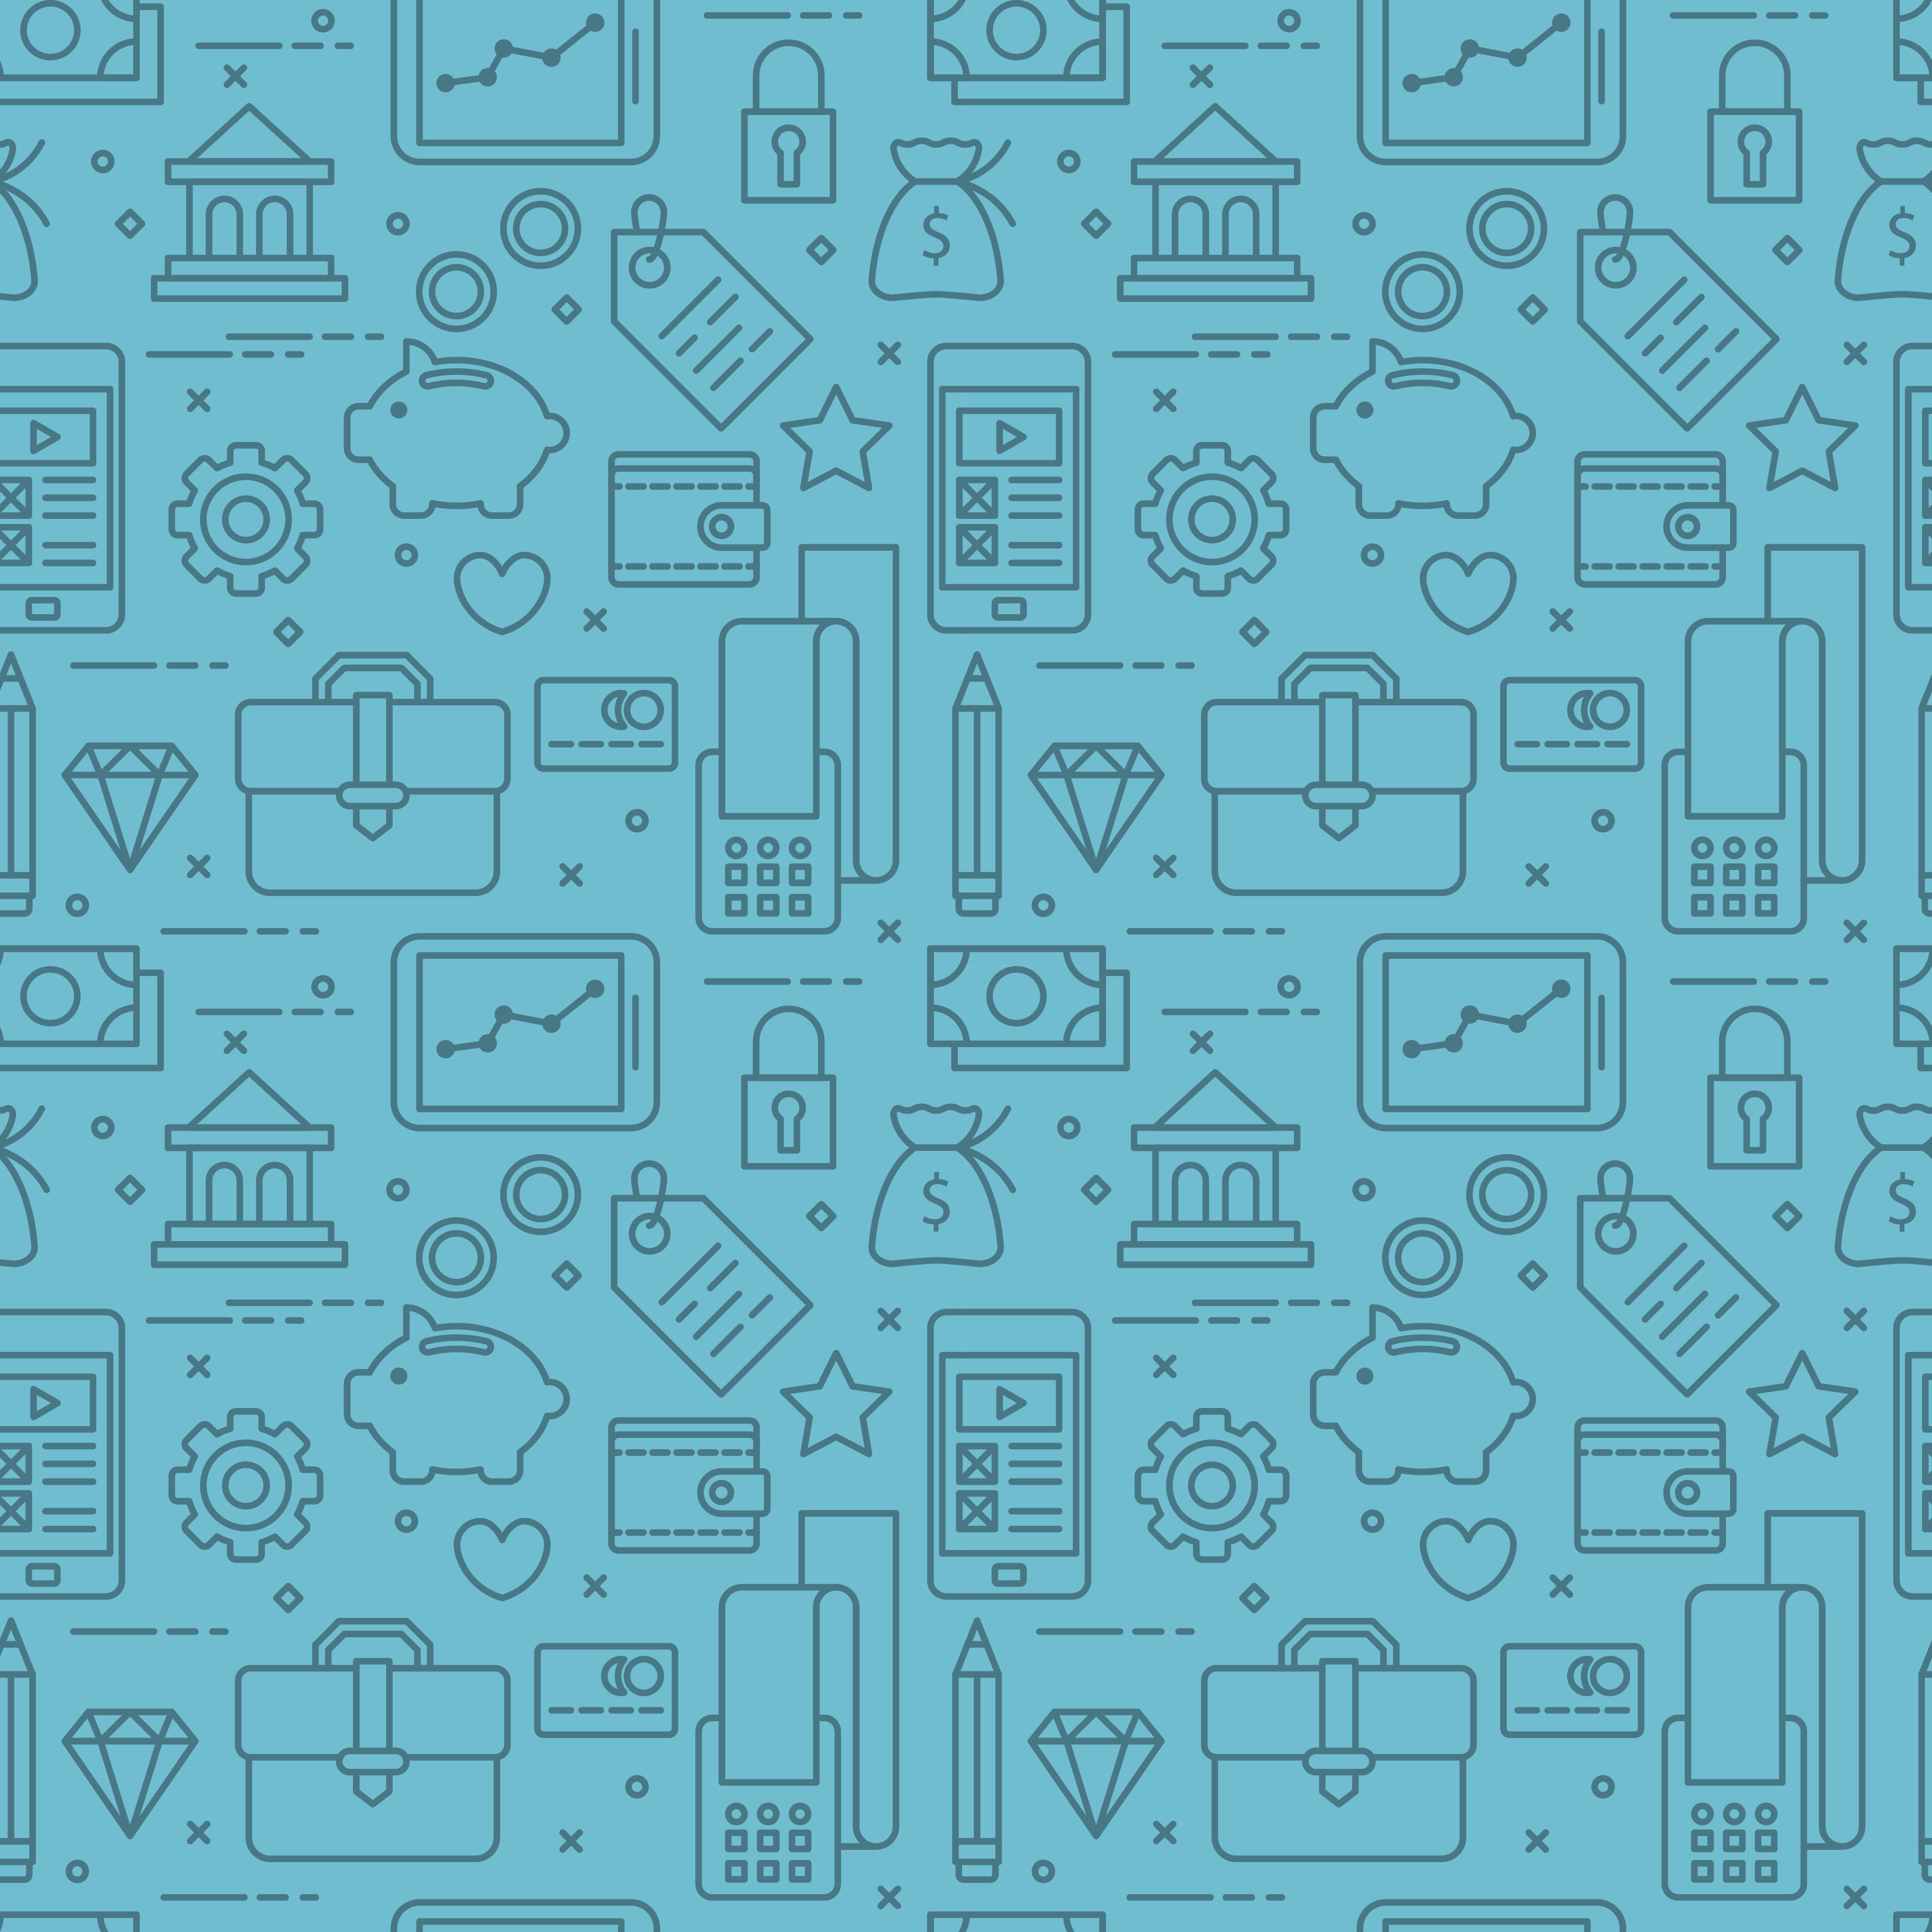 Modern thin line icons seamless pattern for banking web graphics and design. Vector illustration